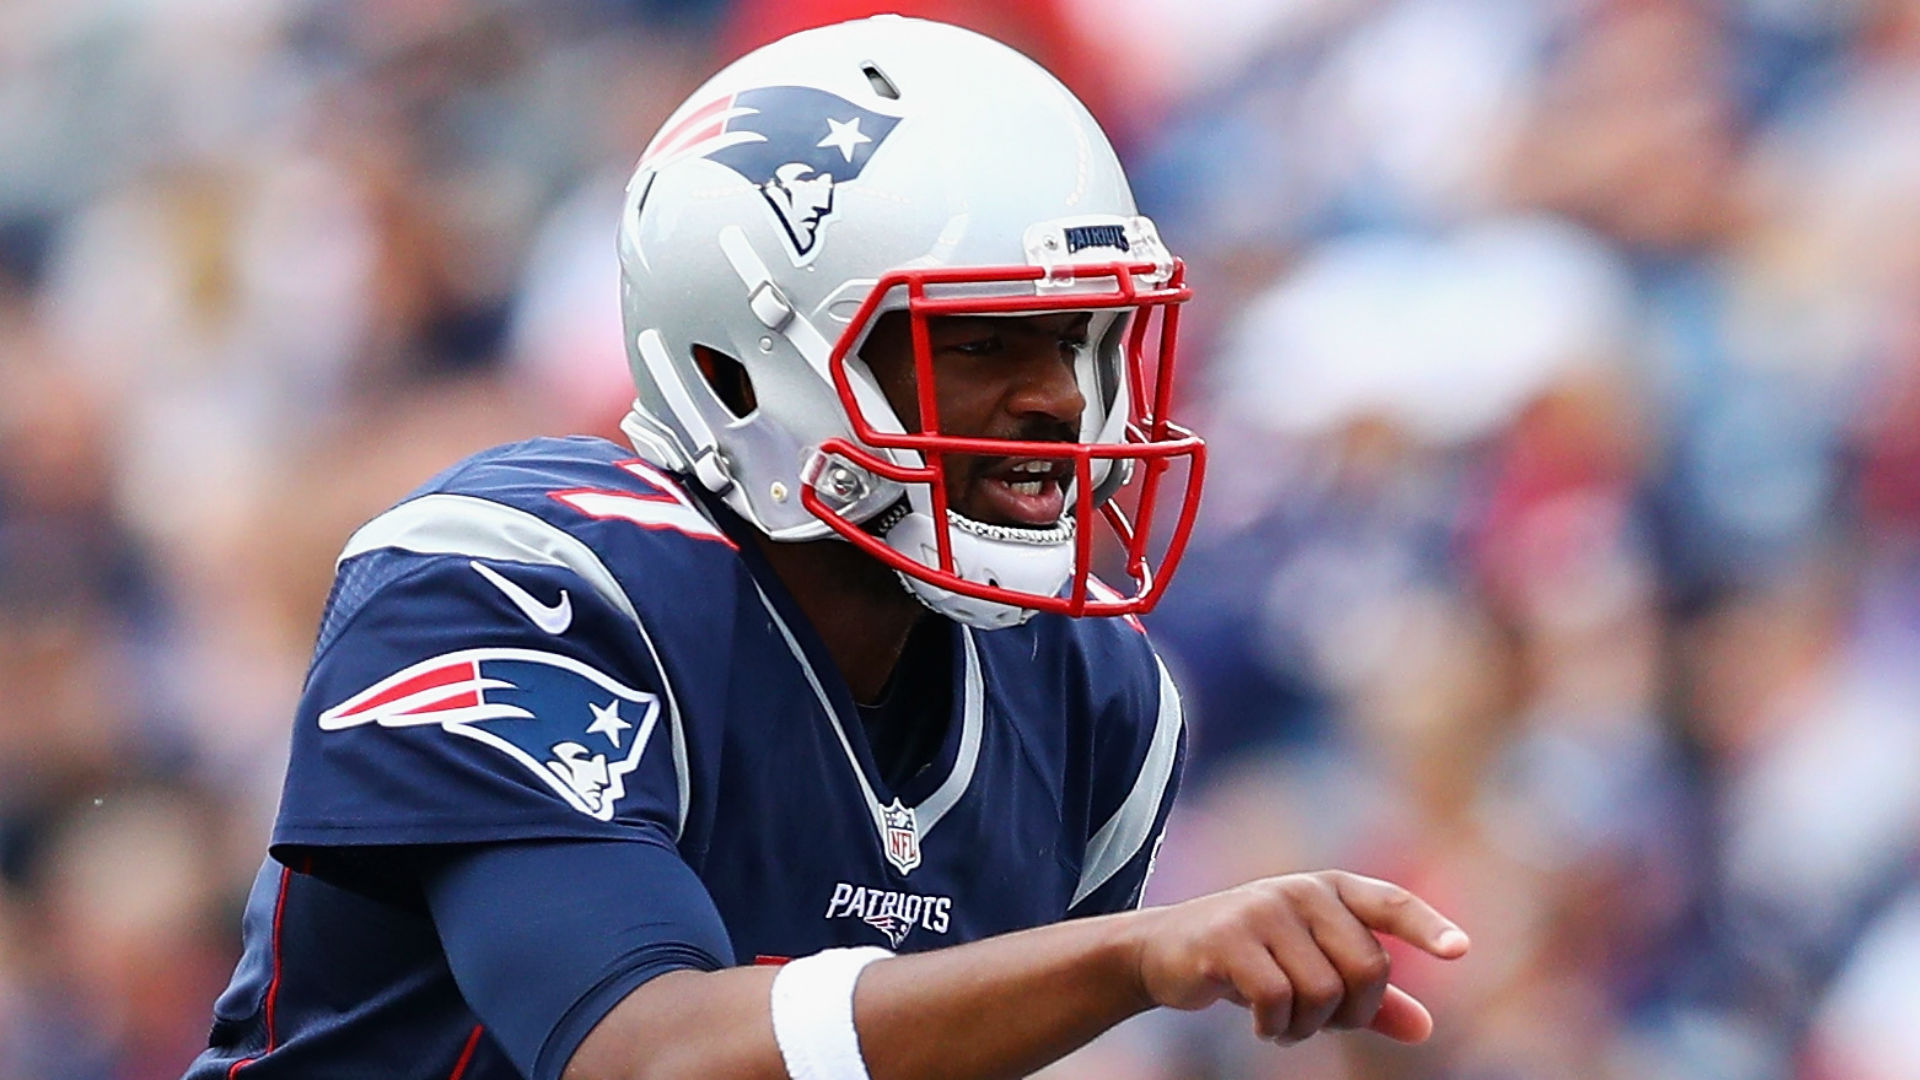 Cardinals could face Jacoby Brissett at QB in Week 2